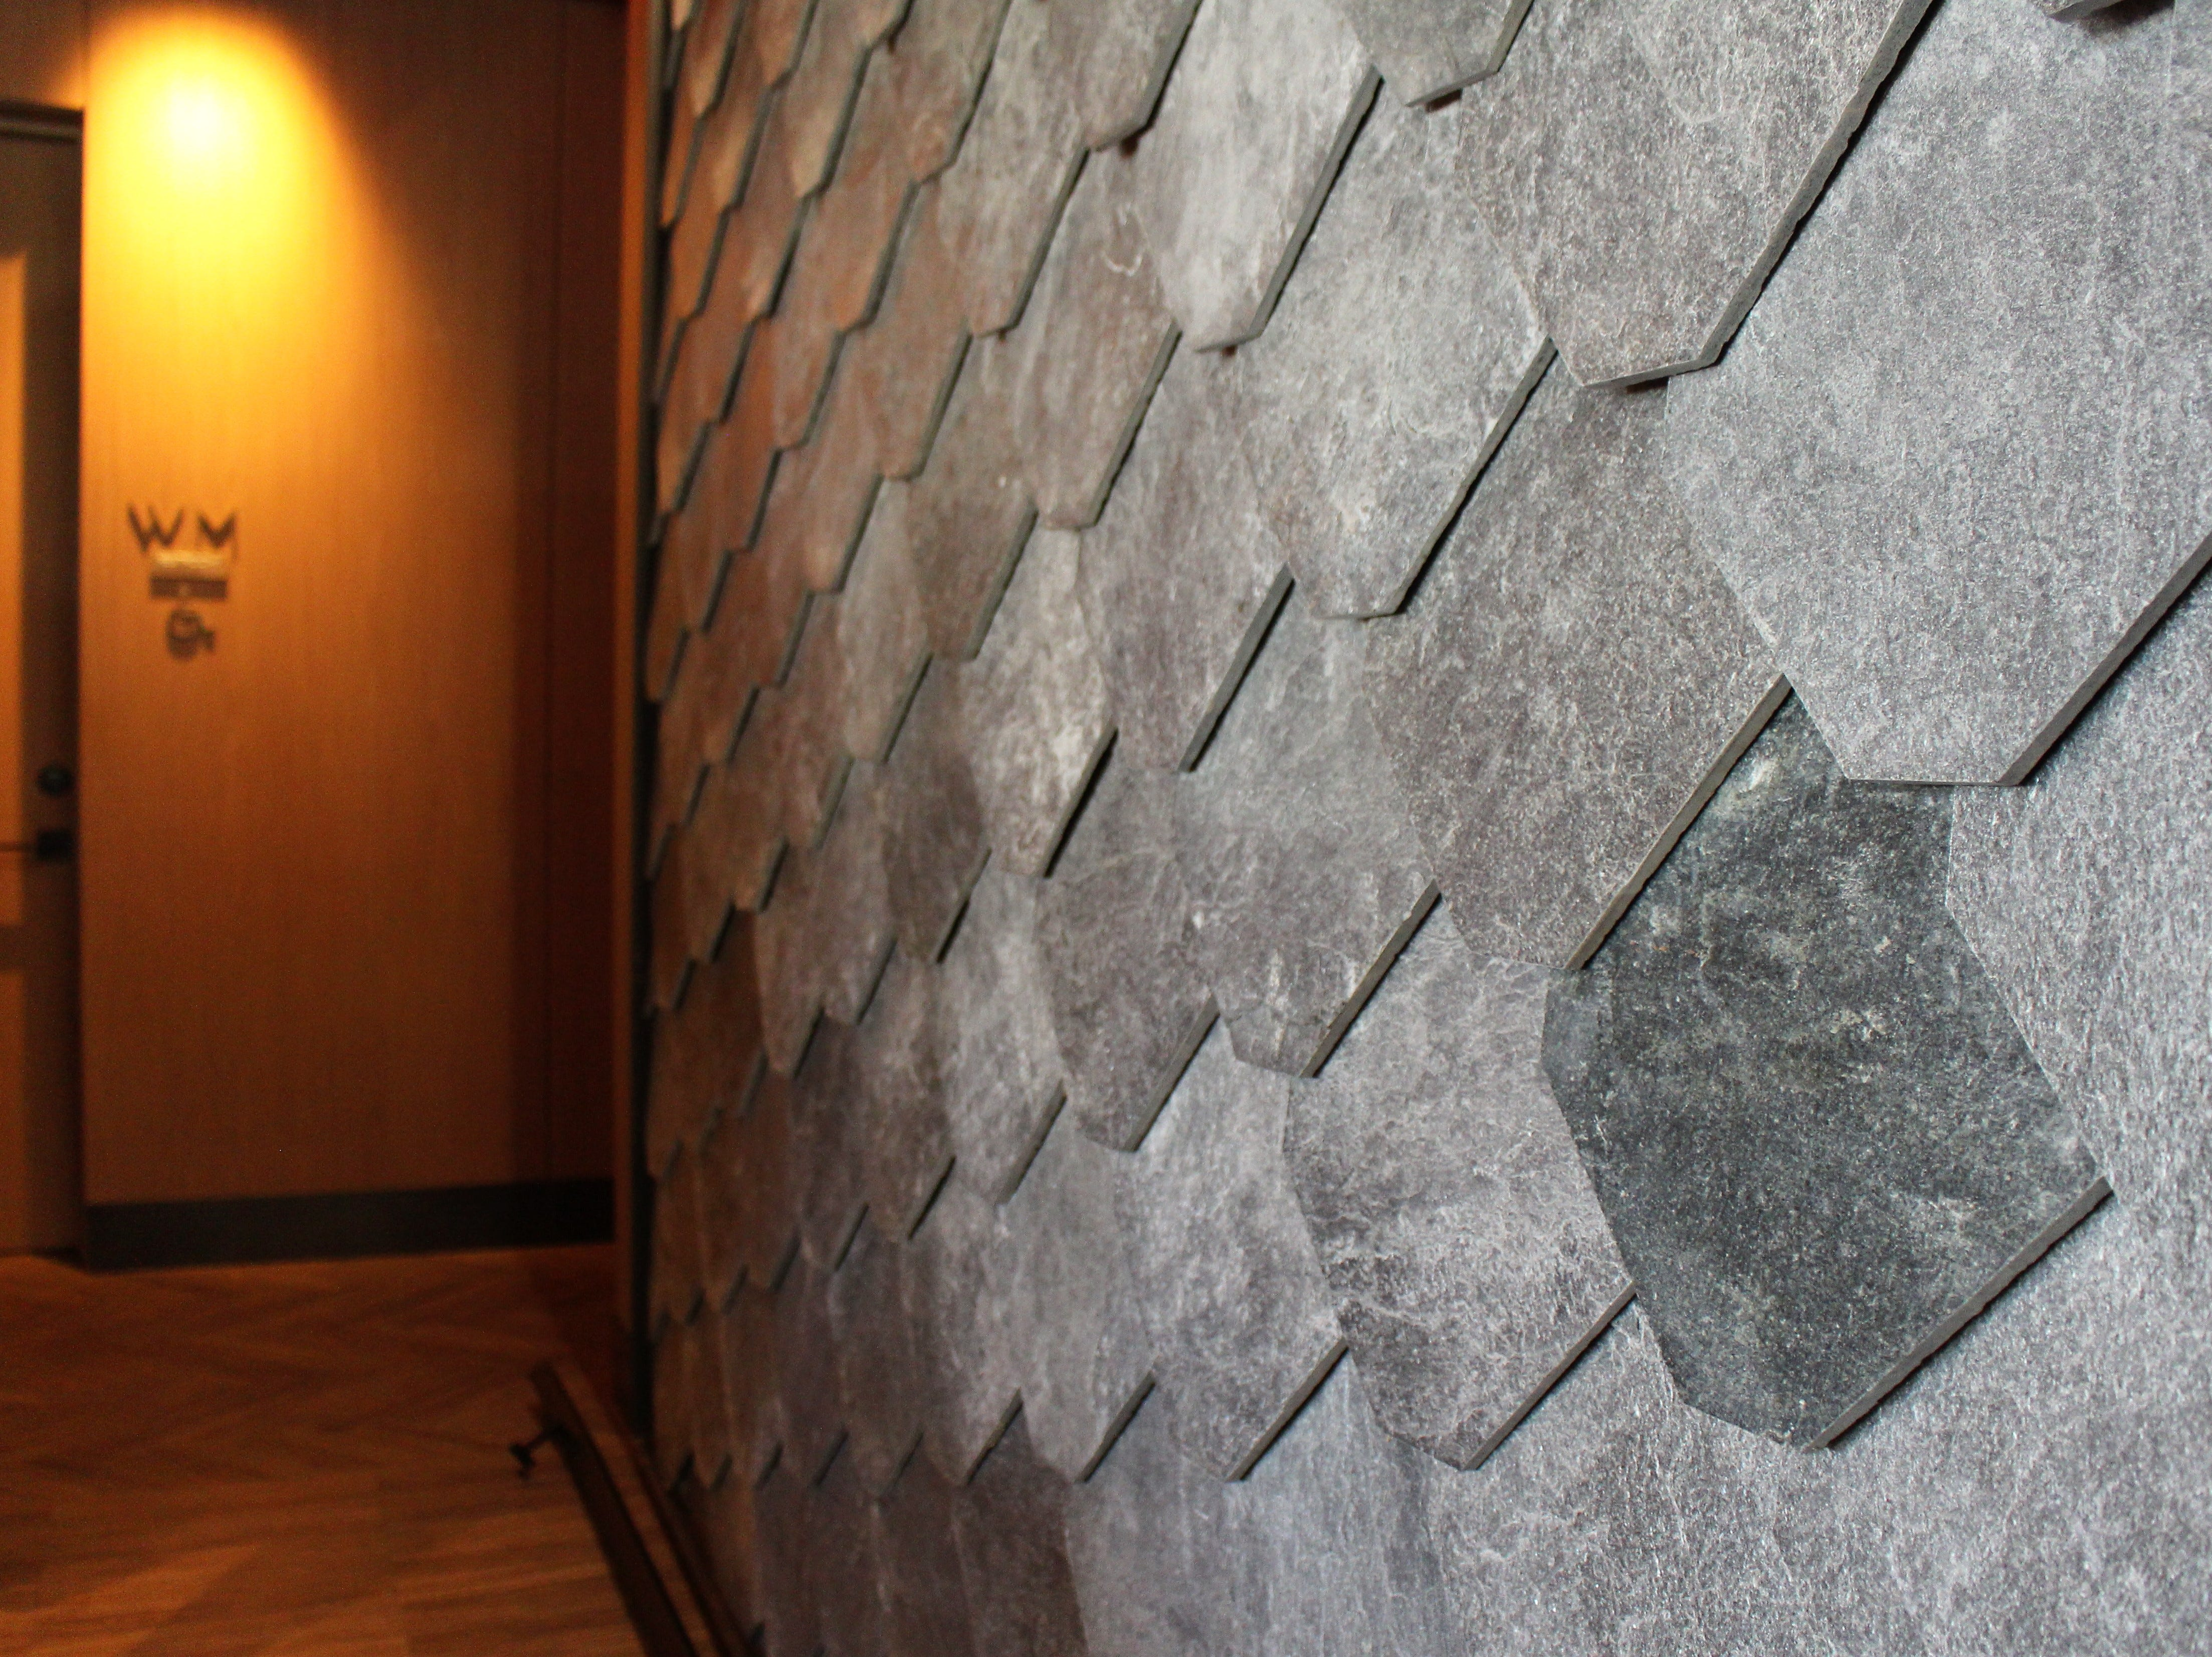 Tiles both inside and outside Ocean 44 in Scottsdale look like large fish scales.